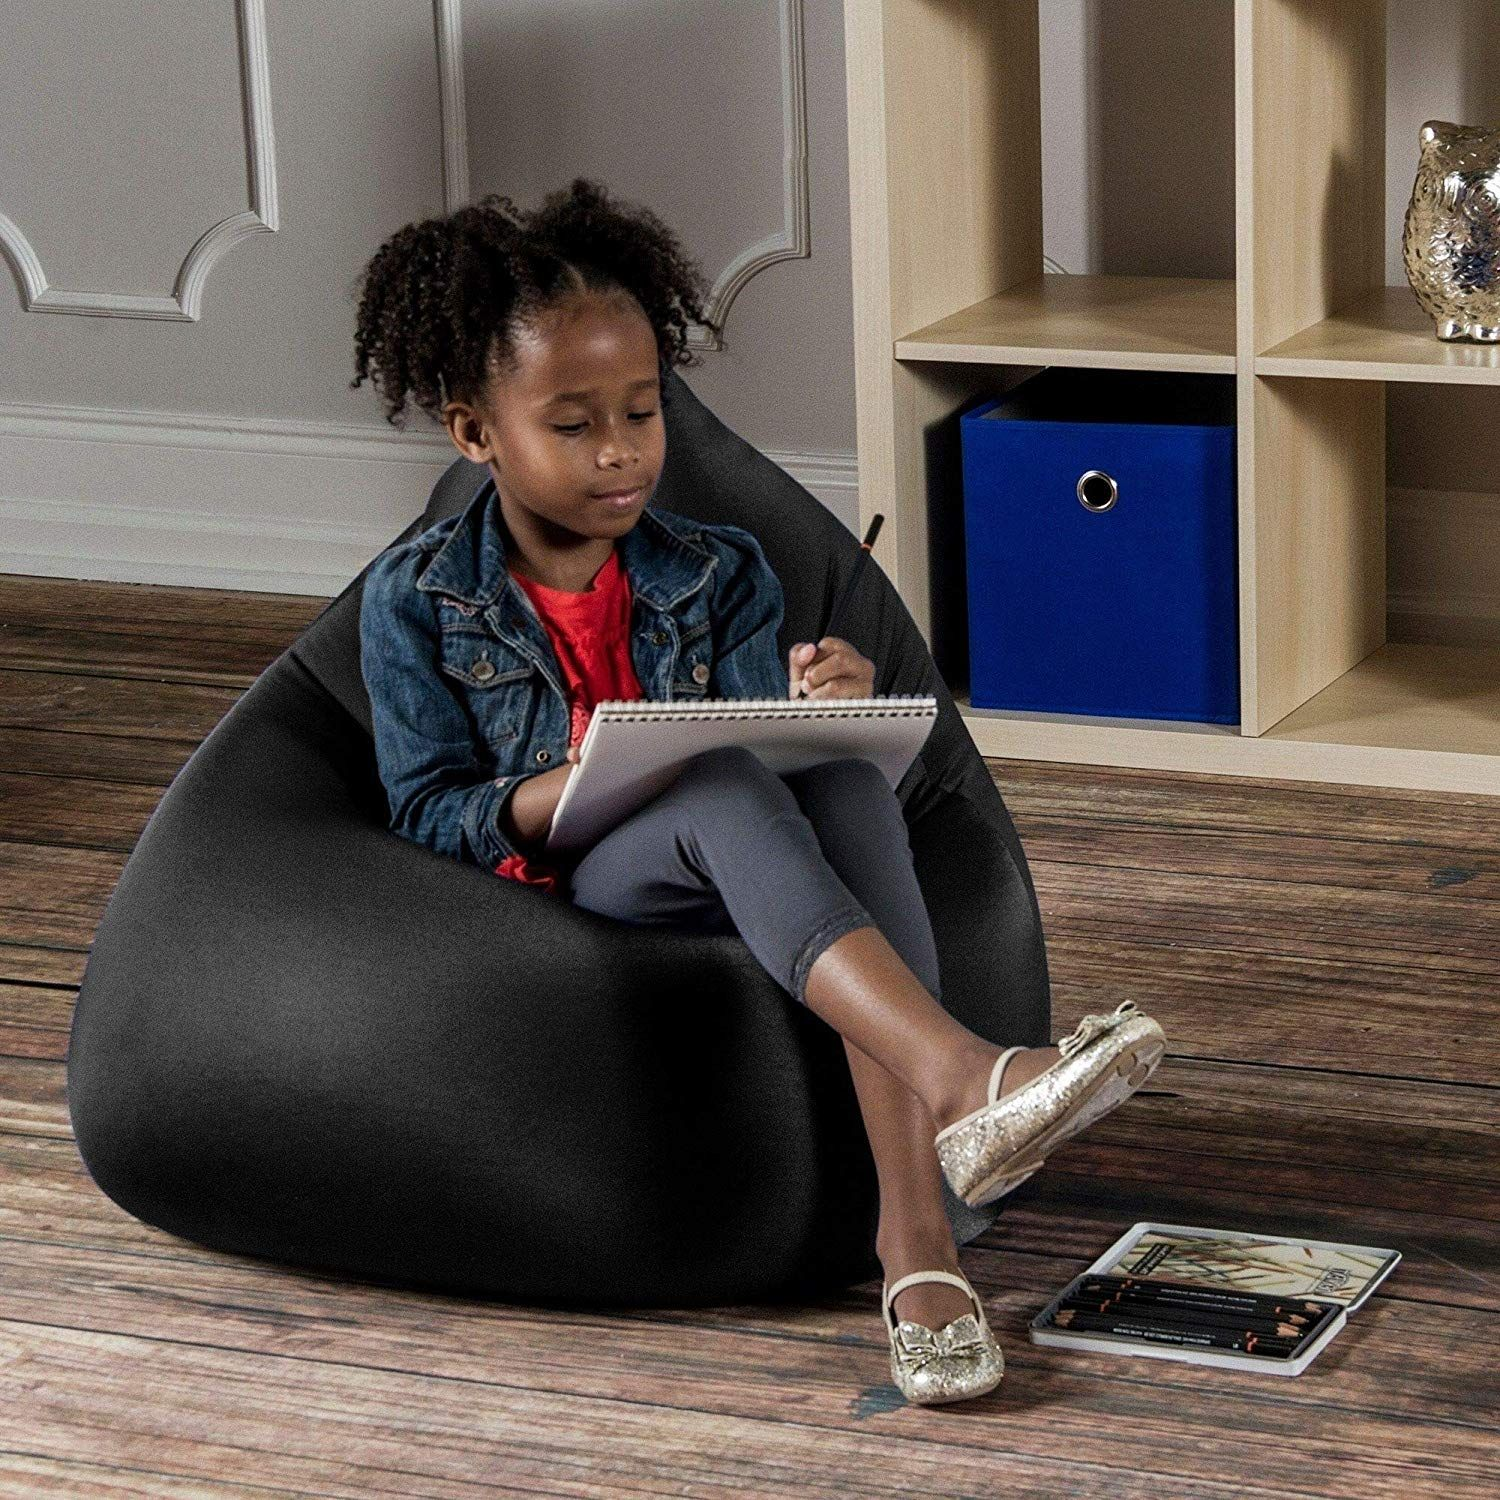 Surprising Giant Bean Bag Chairs For Adults Daily Cool Gadgets Creativecarmelina Interior Chair Design Creativecarmelinacom